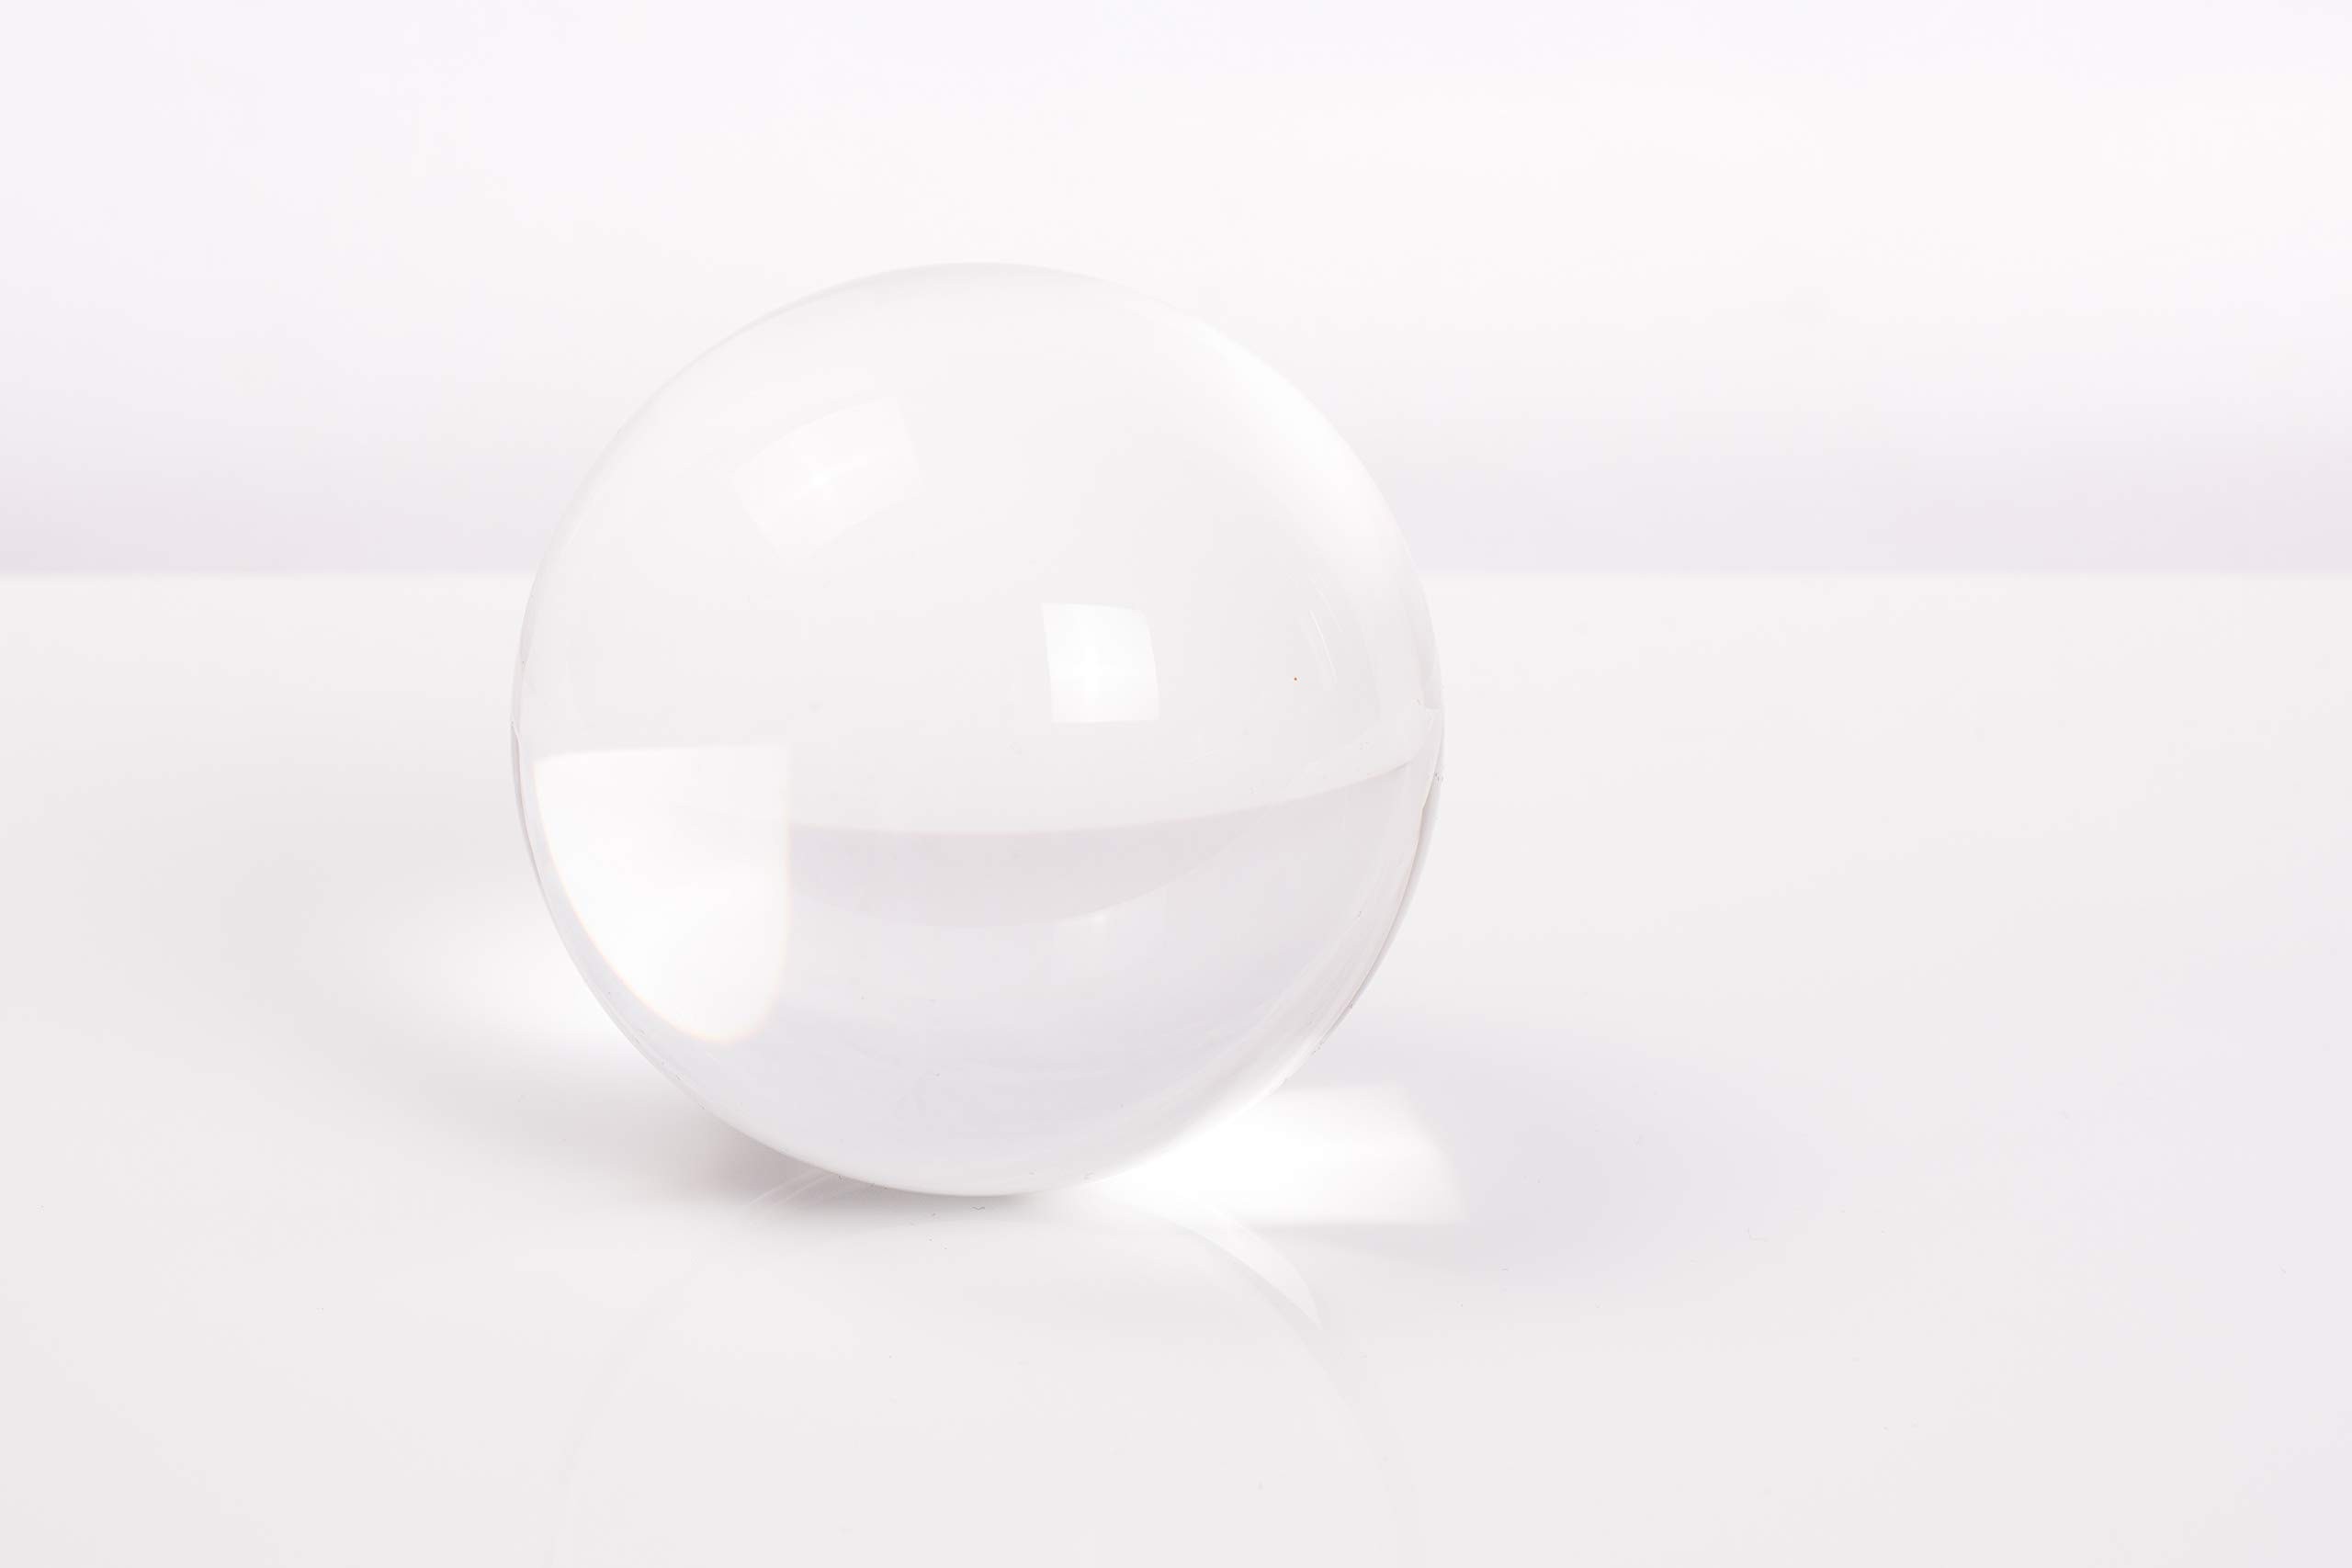 Refractique Lensball 80mm Vivid | K9 2nd Generation Crystal Ball Photography | Photography Accessories | Perfect For Smartphone Photography, DSLR, and more! by Refractique (Image #2)